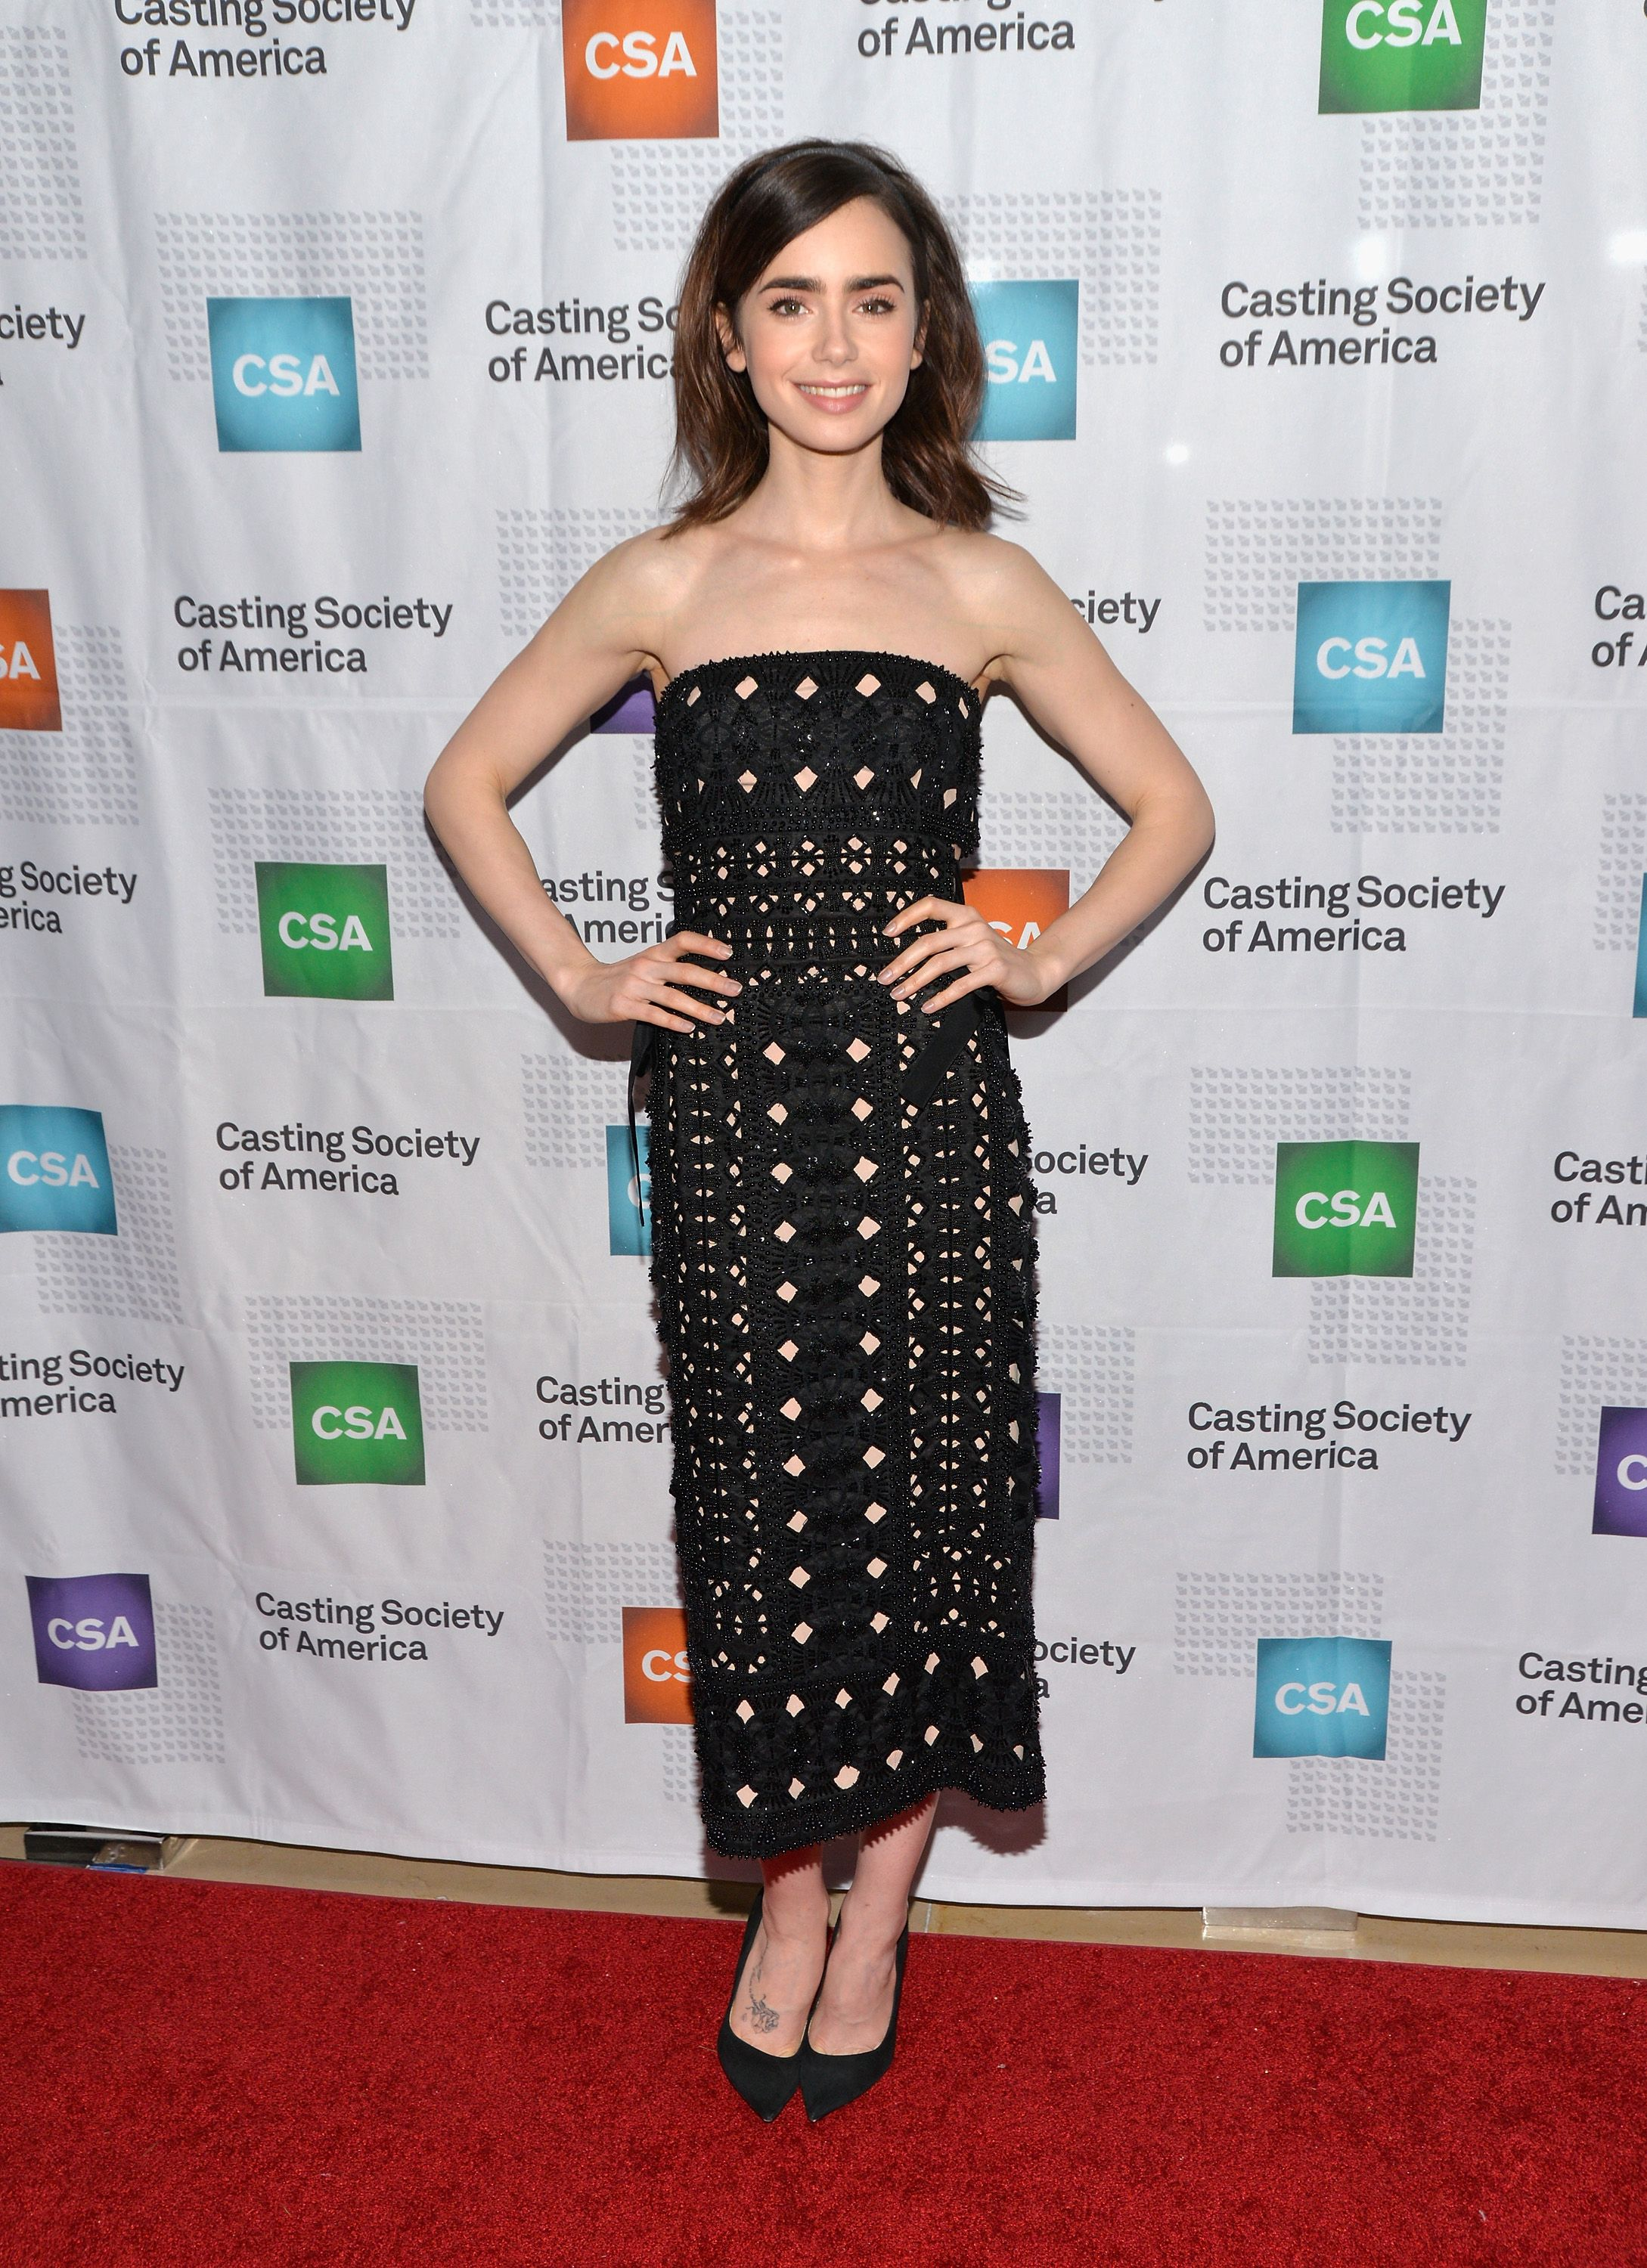 fb59ba99c0df12 Lily Collins' Style File - Every One Of Lily Collins' Red Carpet Outfits